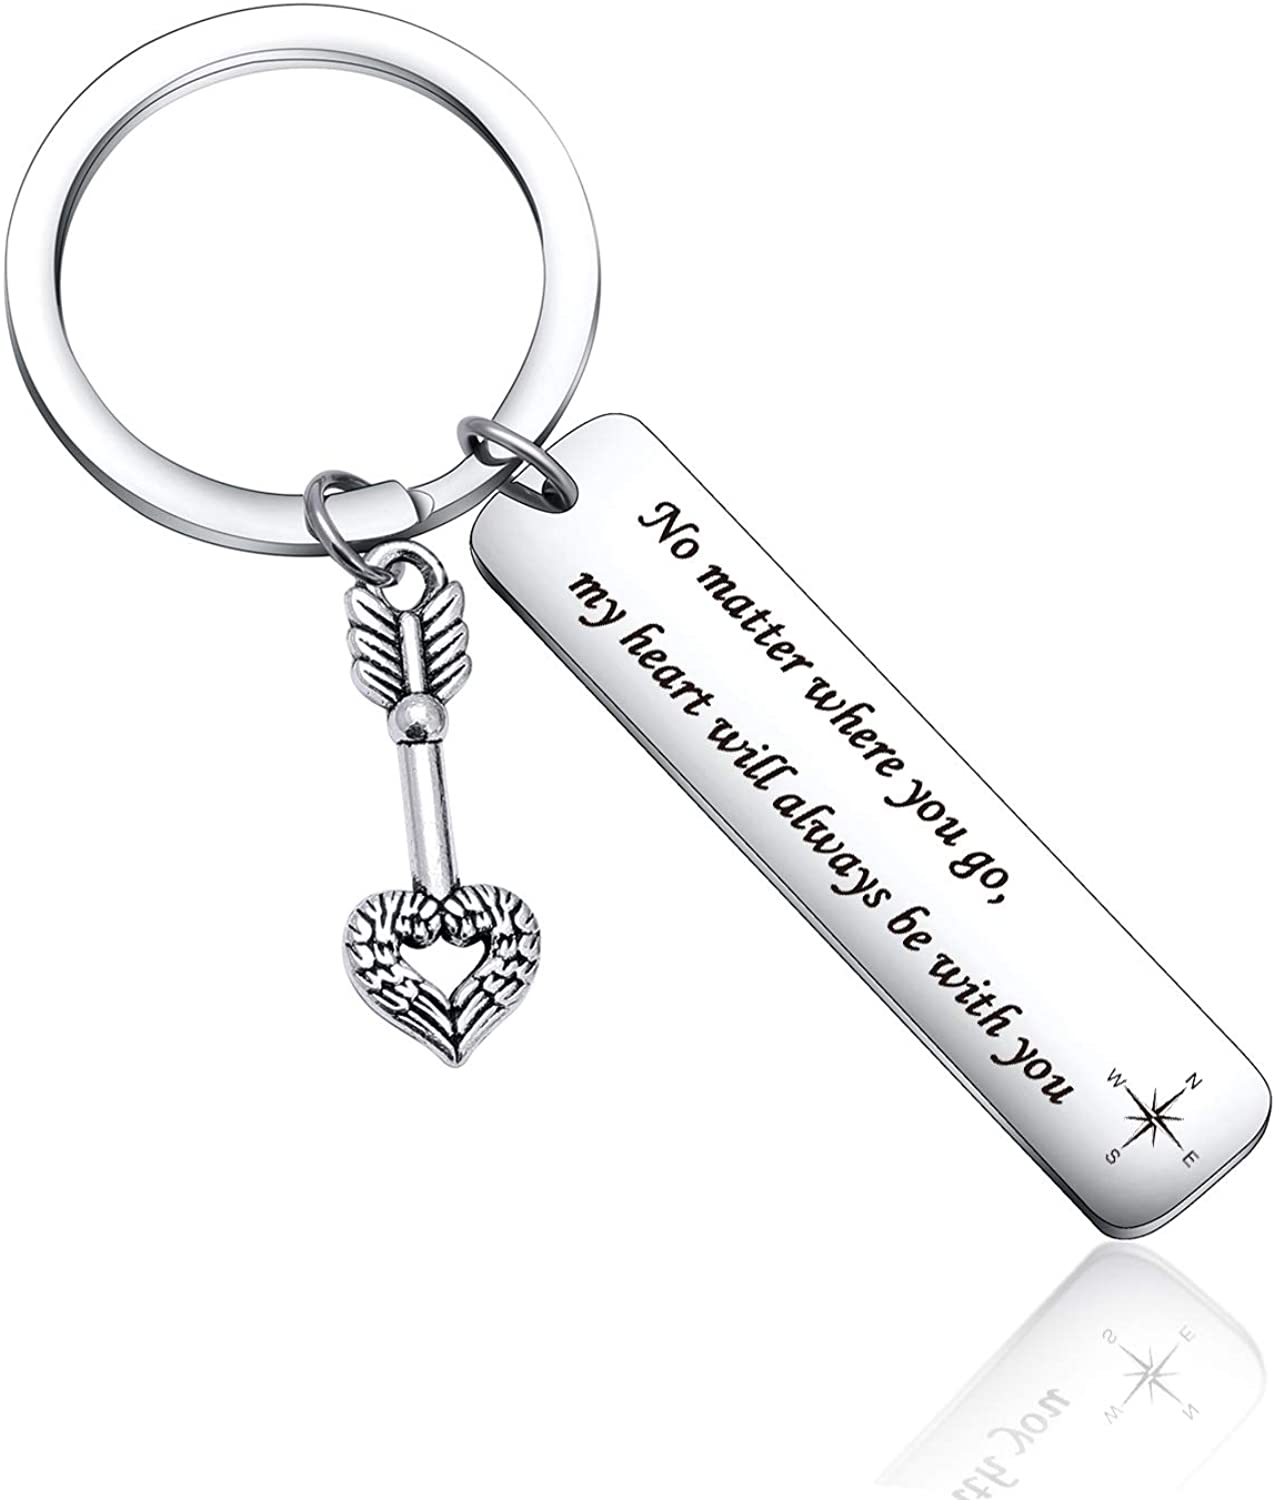 Daughter Son Gift Best Friends, Friendship Mothers Day Gift Family Jewelry Tour Guide Keychain